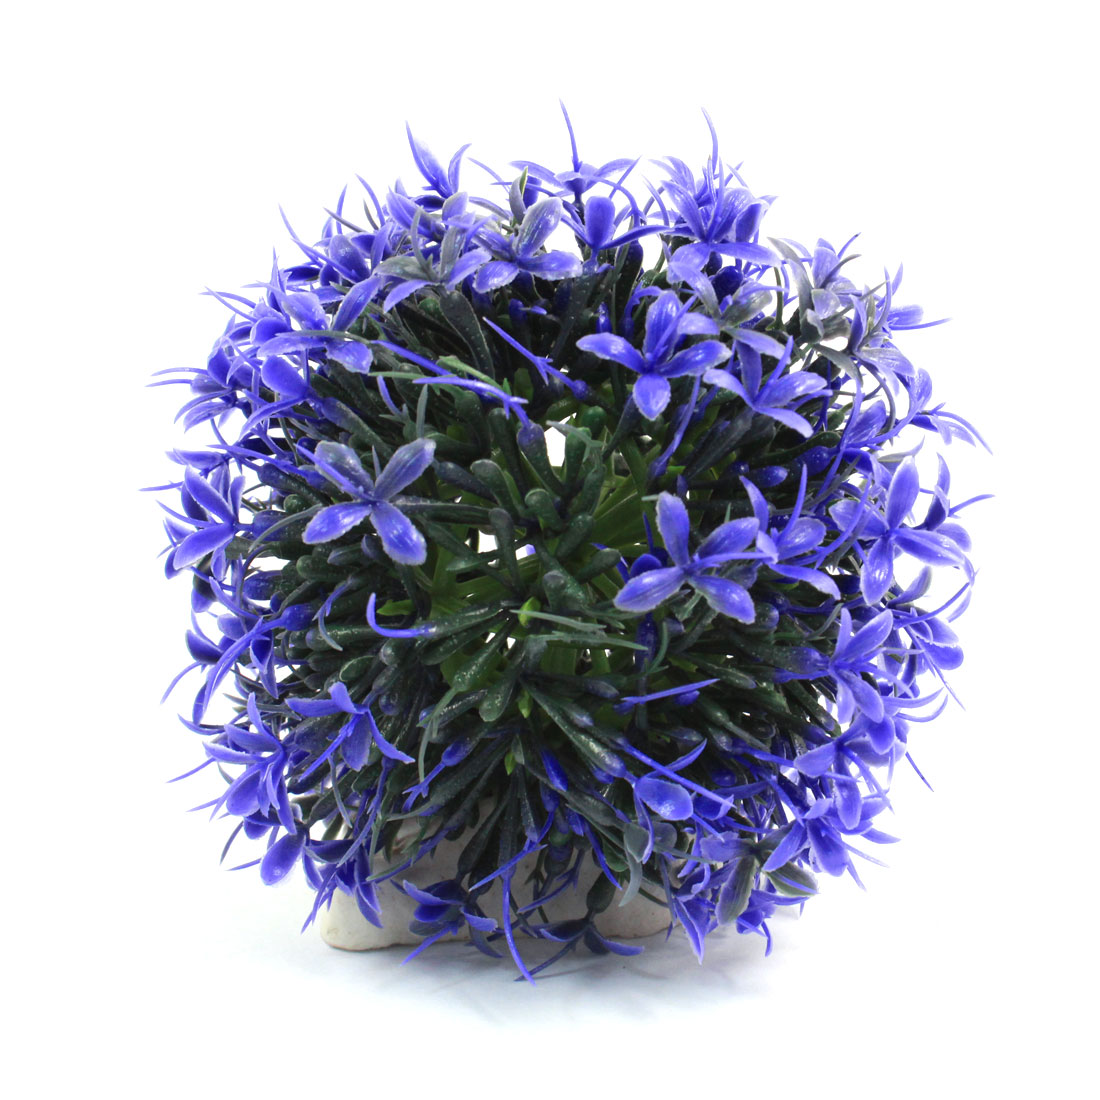 "Aquarium Fish Tank Landscaping Artificial Emulational Underwater Water Plant Flower Decor Purple Green 4"" Height"